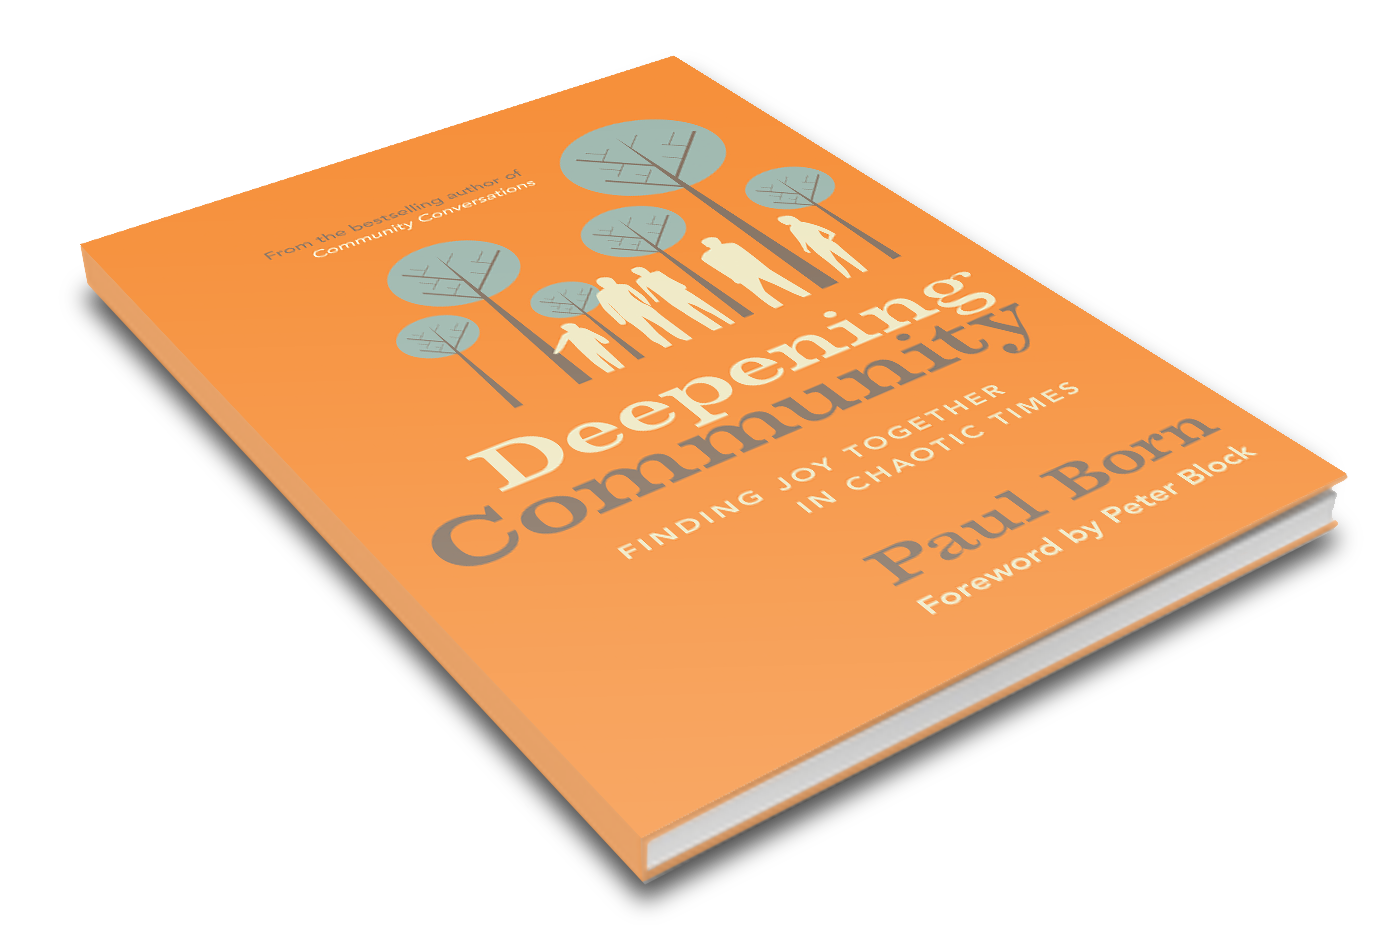 Deepening Community Book